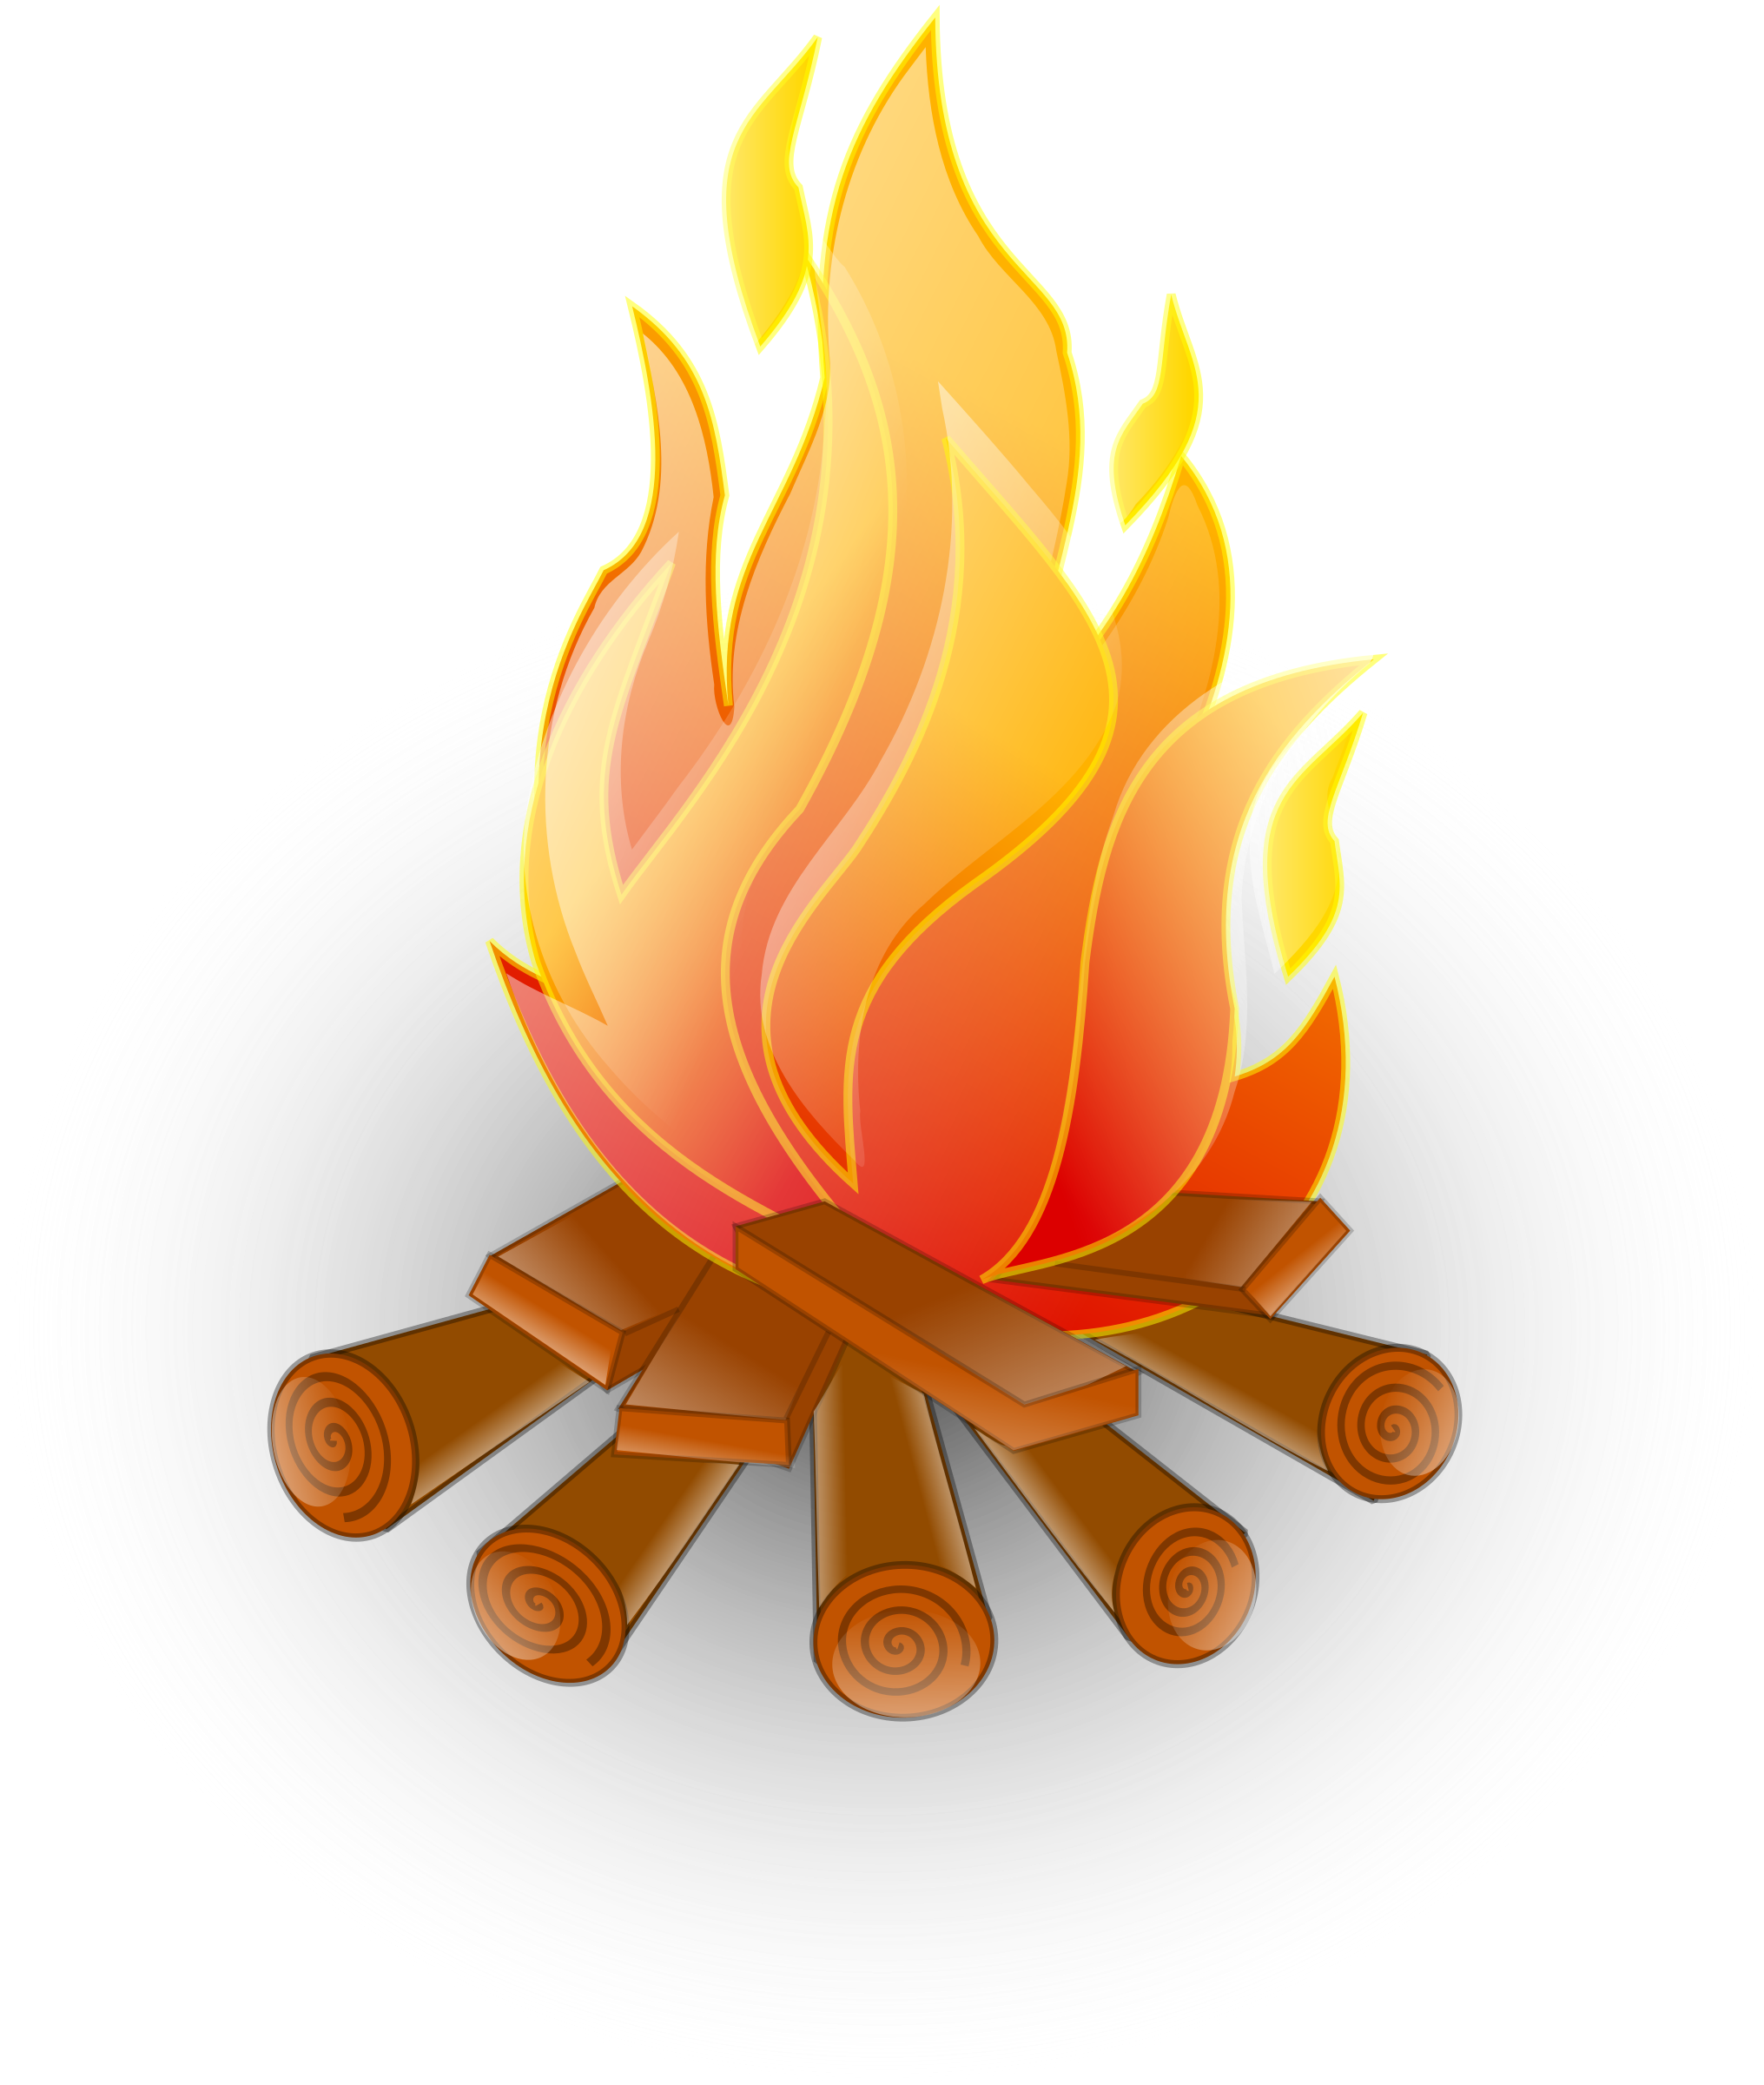 Big image png. Flames clipart fire flower